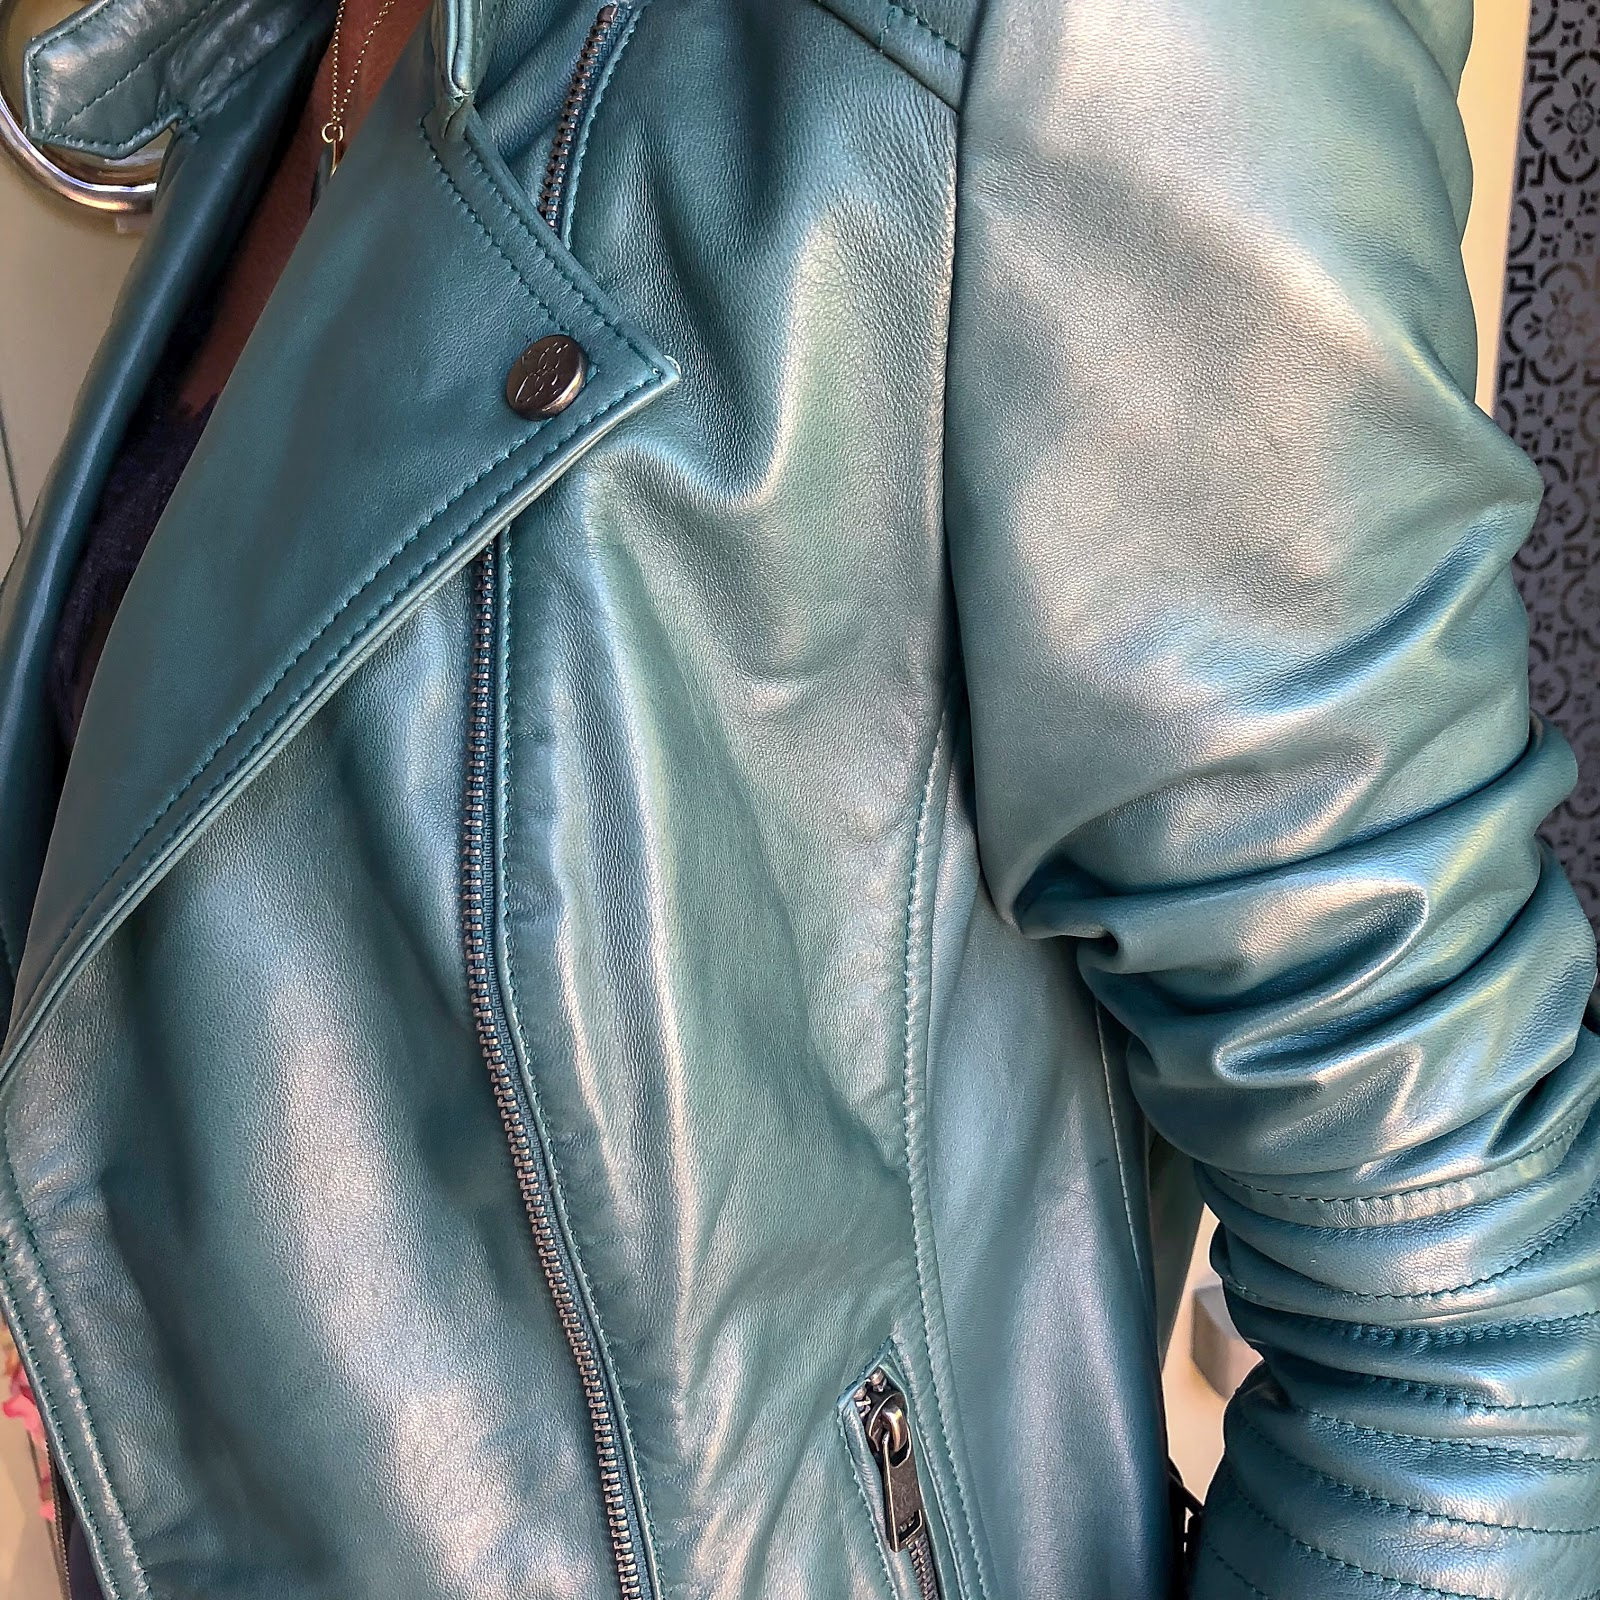 my midlife fashion, lakeland leather toni leather biker jacket in petrol green